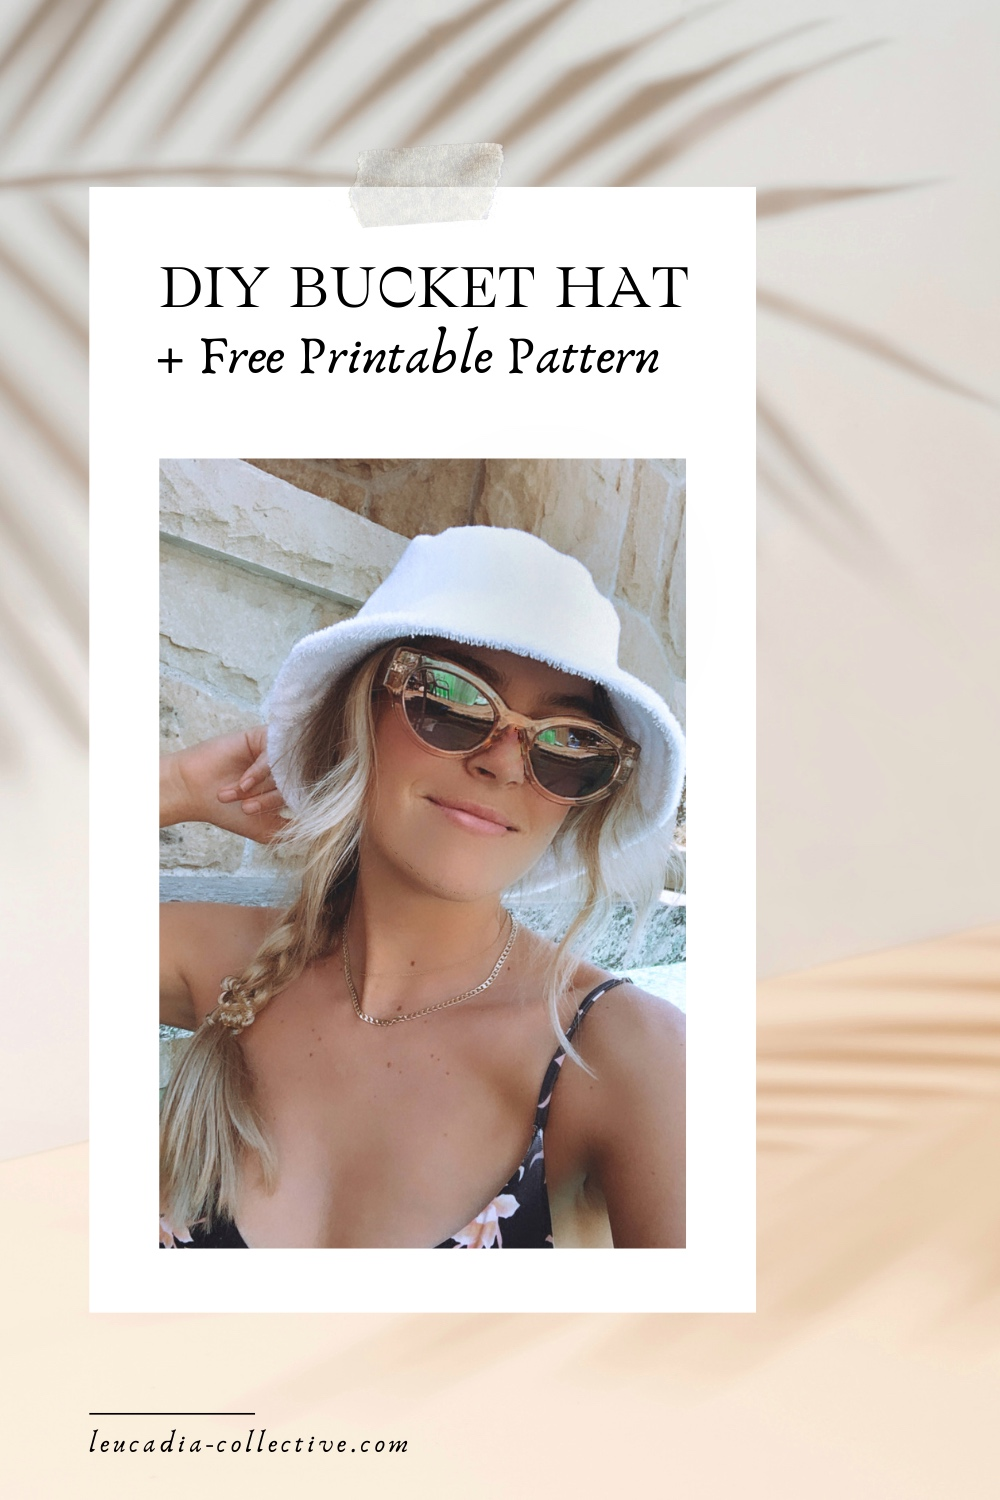 Free Bucket Hat Pattern and Sewing Tutorial - Terry Cloth Bucket hat | Lack of Color Bucket Hat Dupe. Sewing projects for beginners